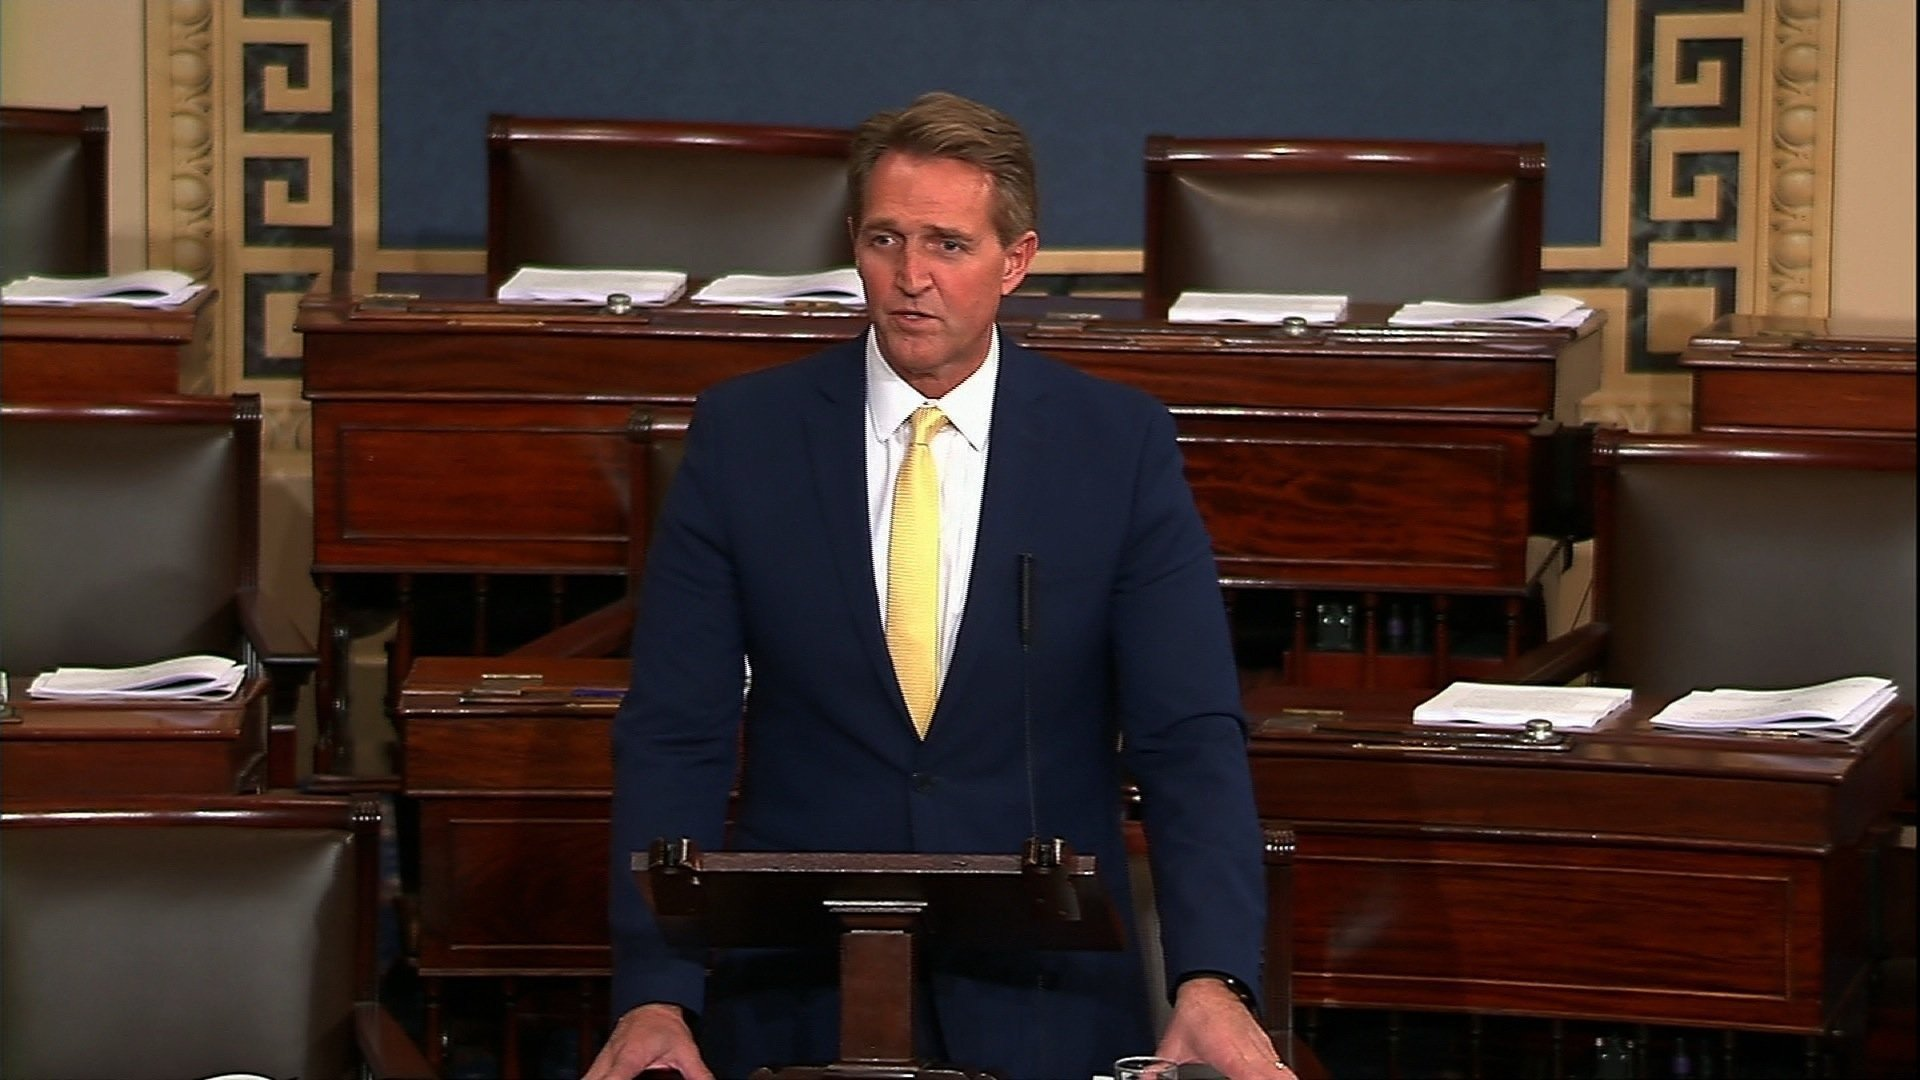 GOP Sen. Jeff Flake gave some of his harshest criticism of President Donald Trump to date in a commencement speech Wednesday to Harvard Law students, where he shared his concerns for the integrity of politics in the United States. (Source: CNN)